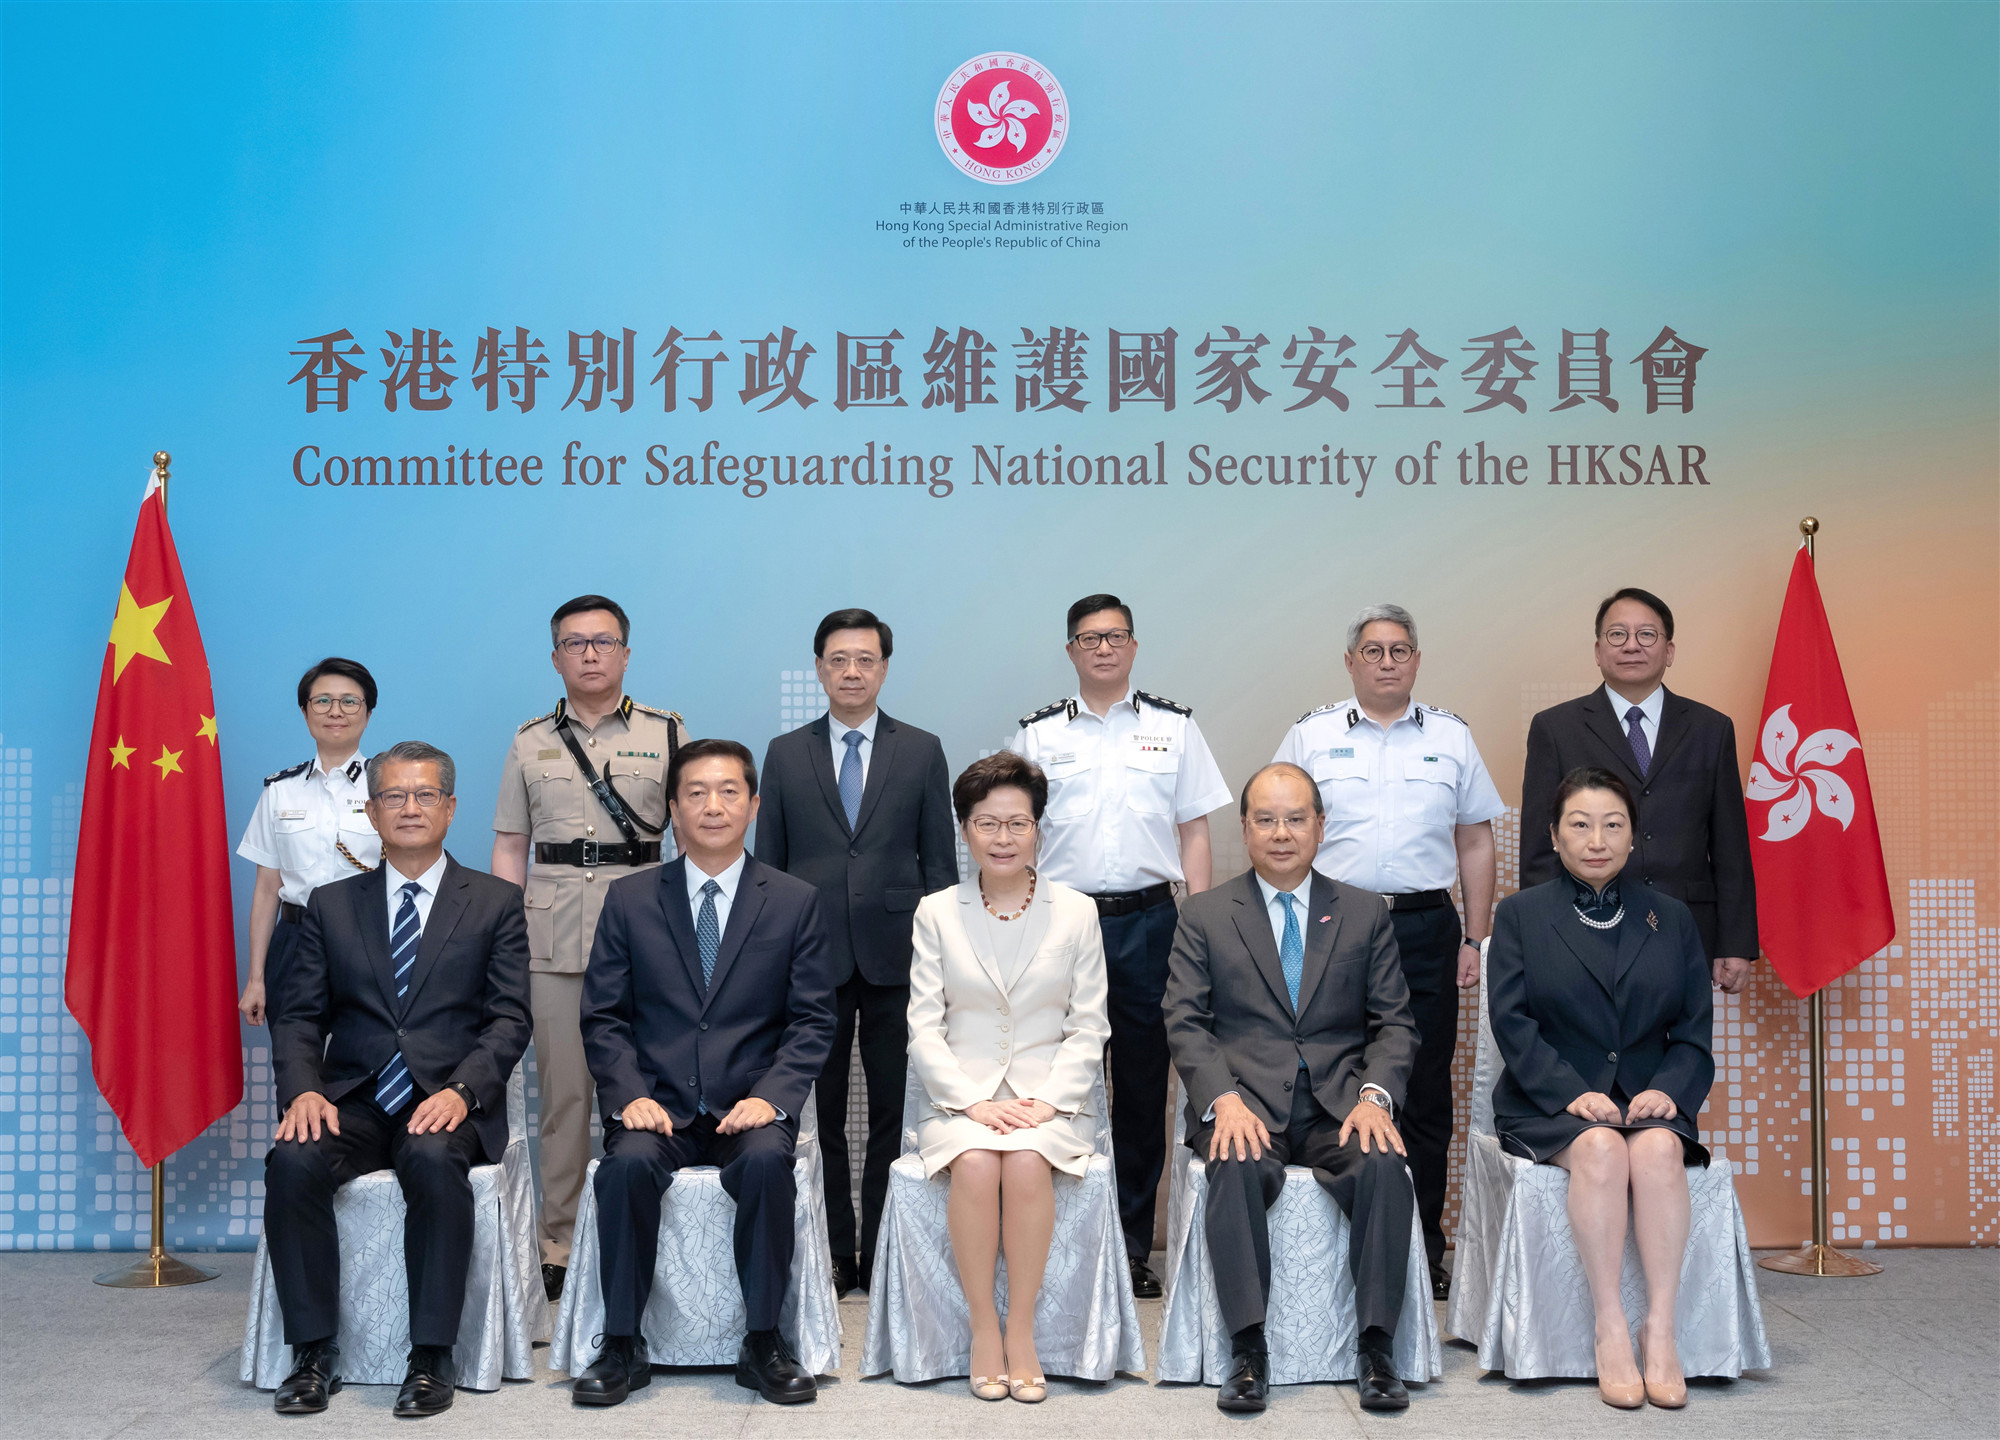 Committee for safeguarding national security of HKSAR convenes first meeting